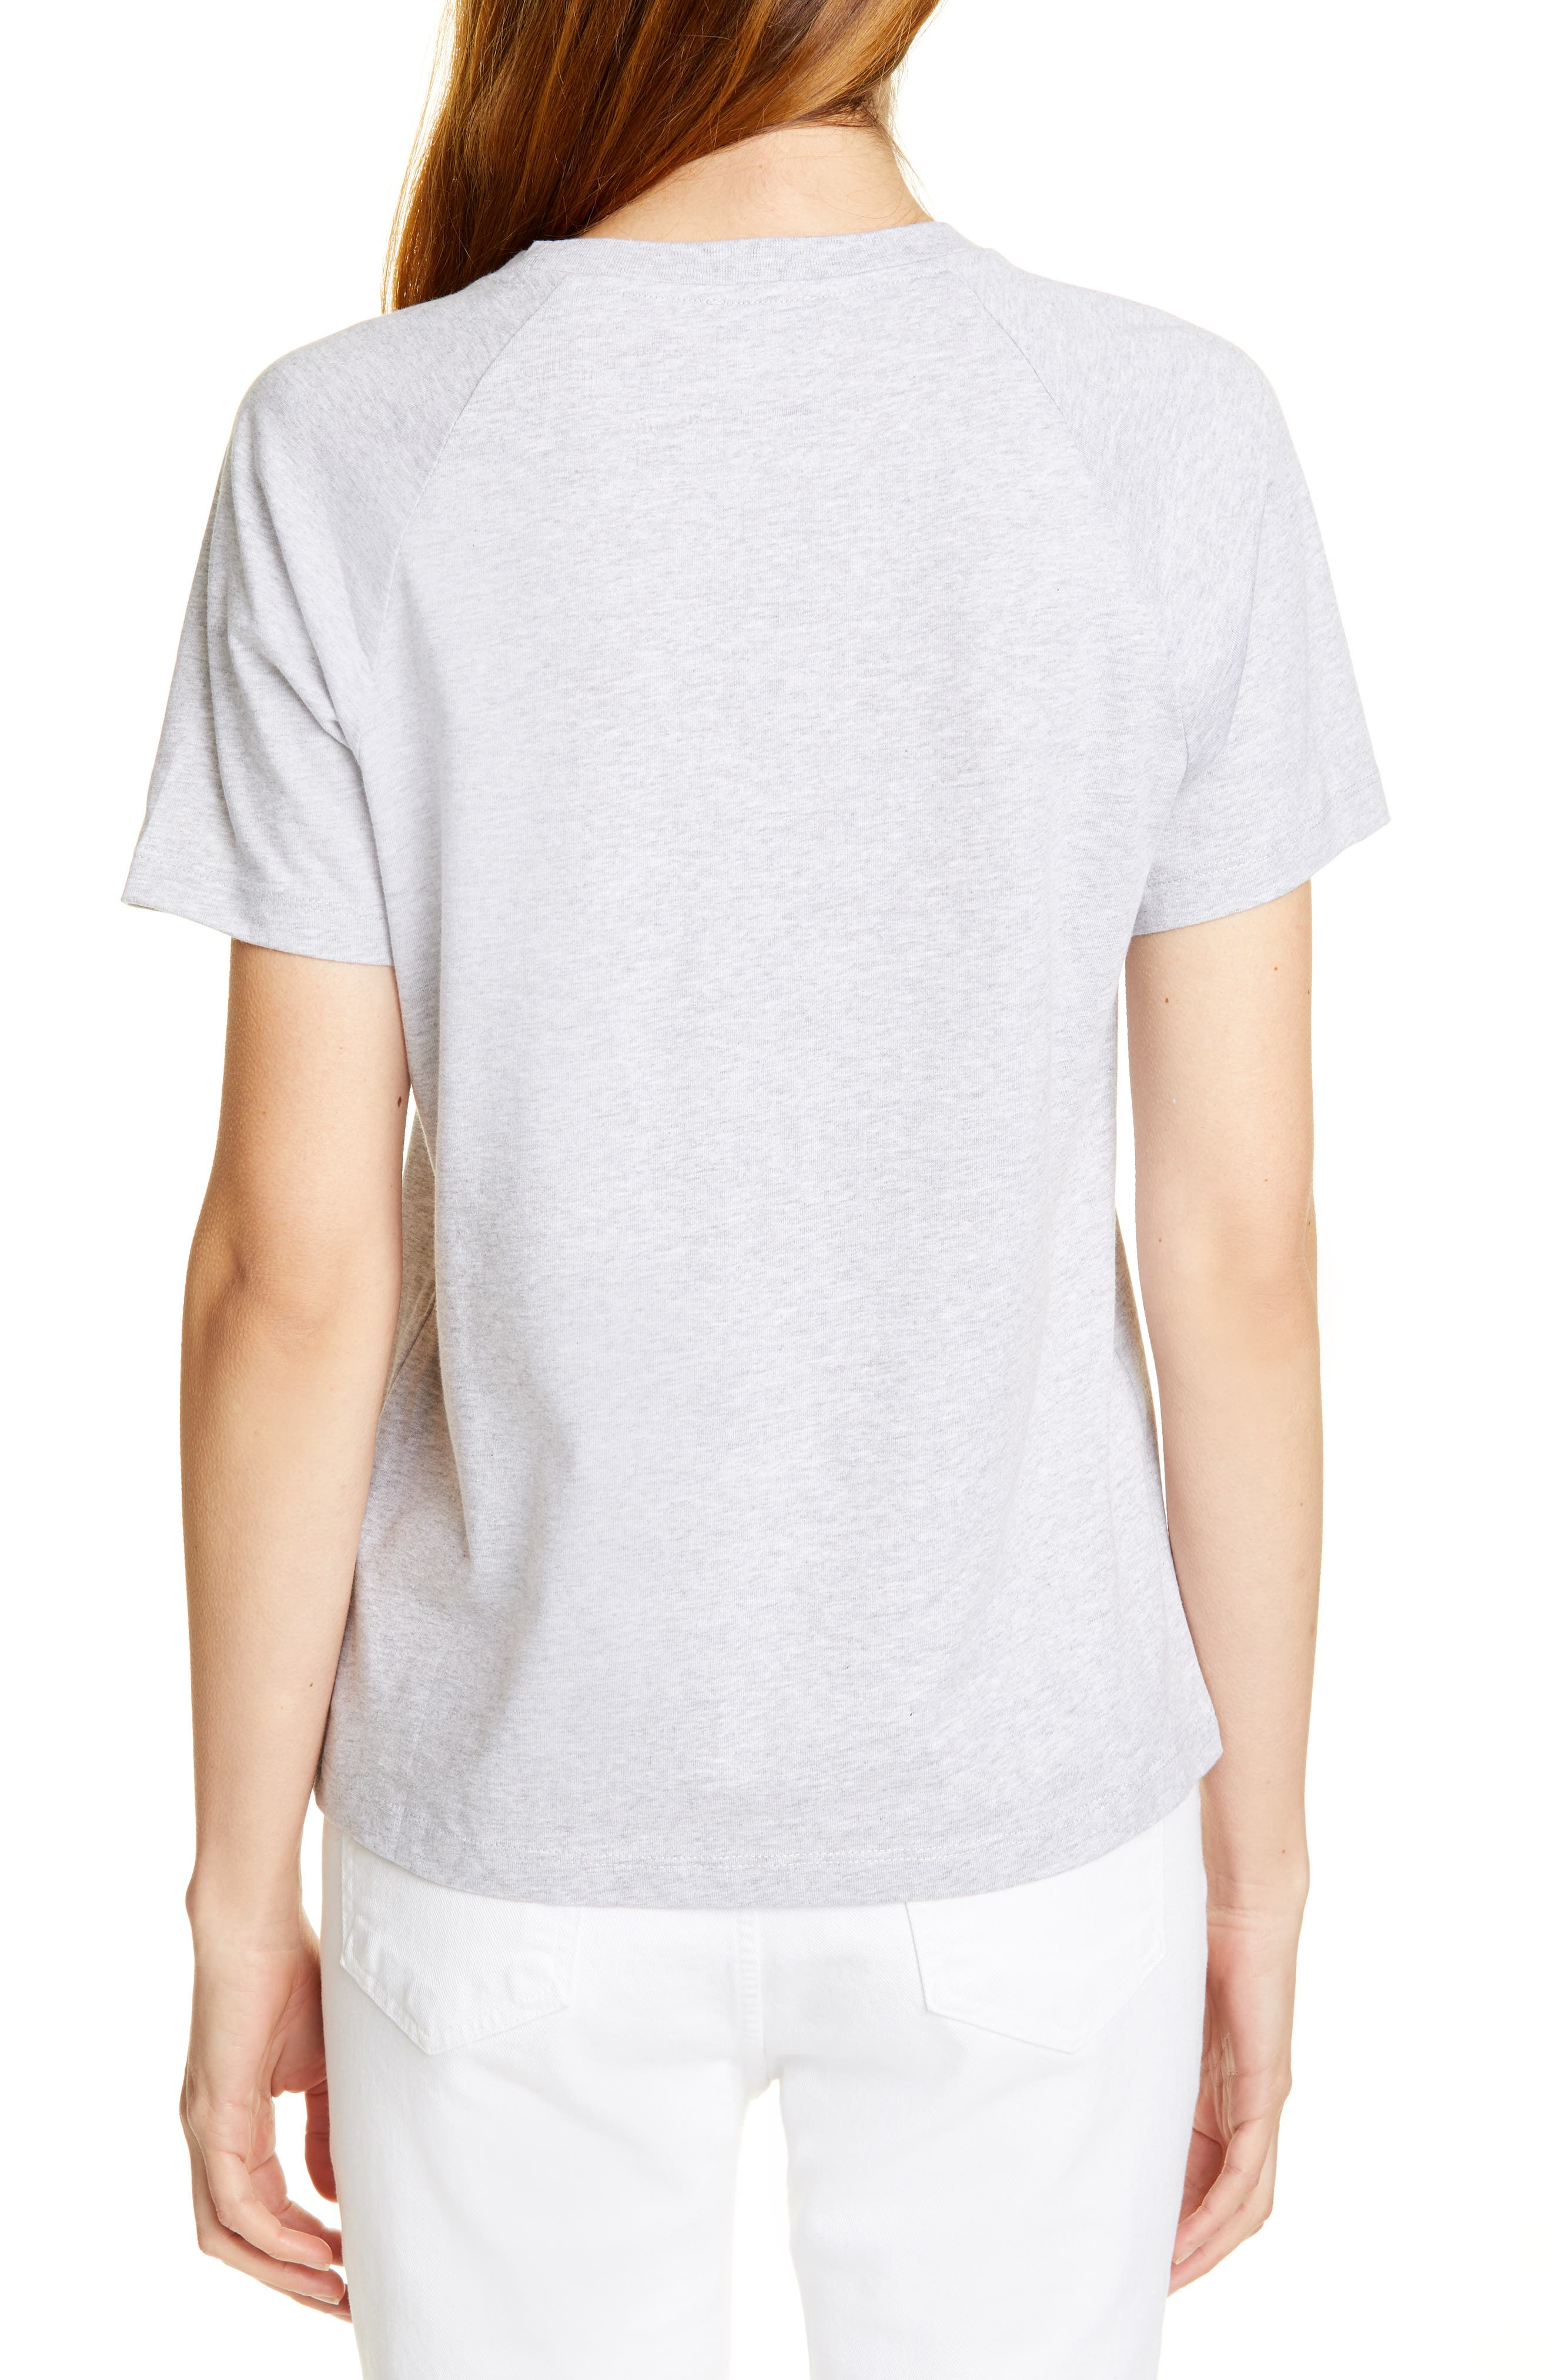 KENZO,                             Side Logo Tee,                             Alternate thumbnail 2, color,                             032